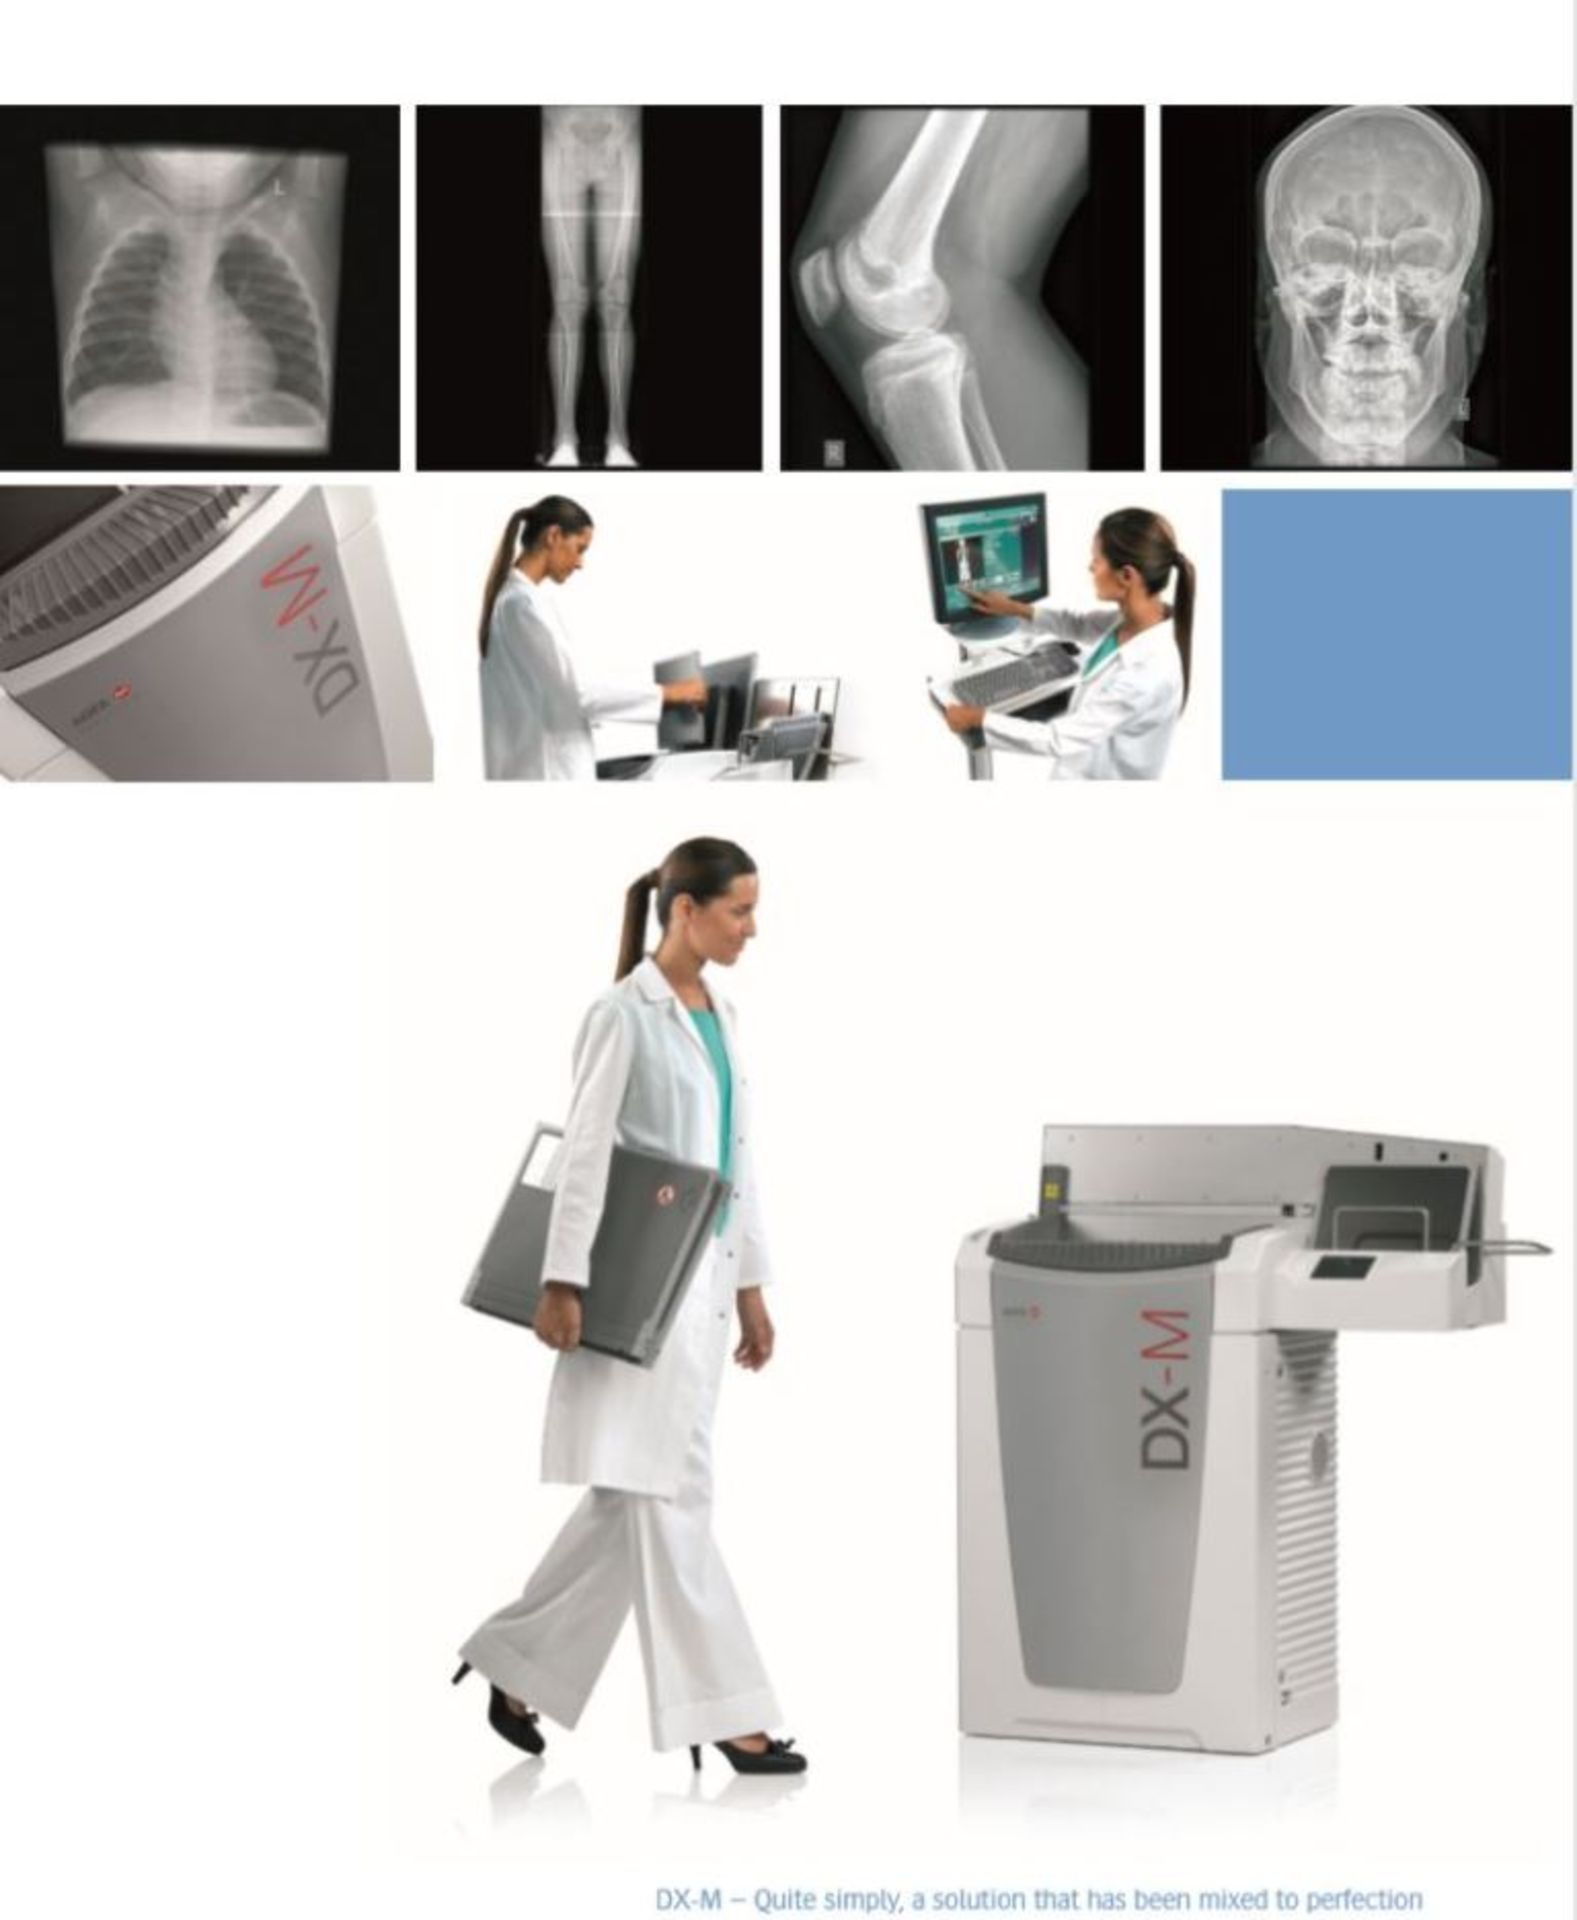 Lot 1895 - LOCATED AT MELTHAM - Agfa HealthCare's DX-M CR (Computed Radiography)